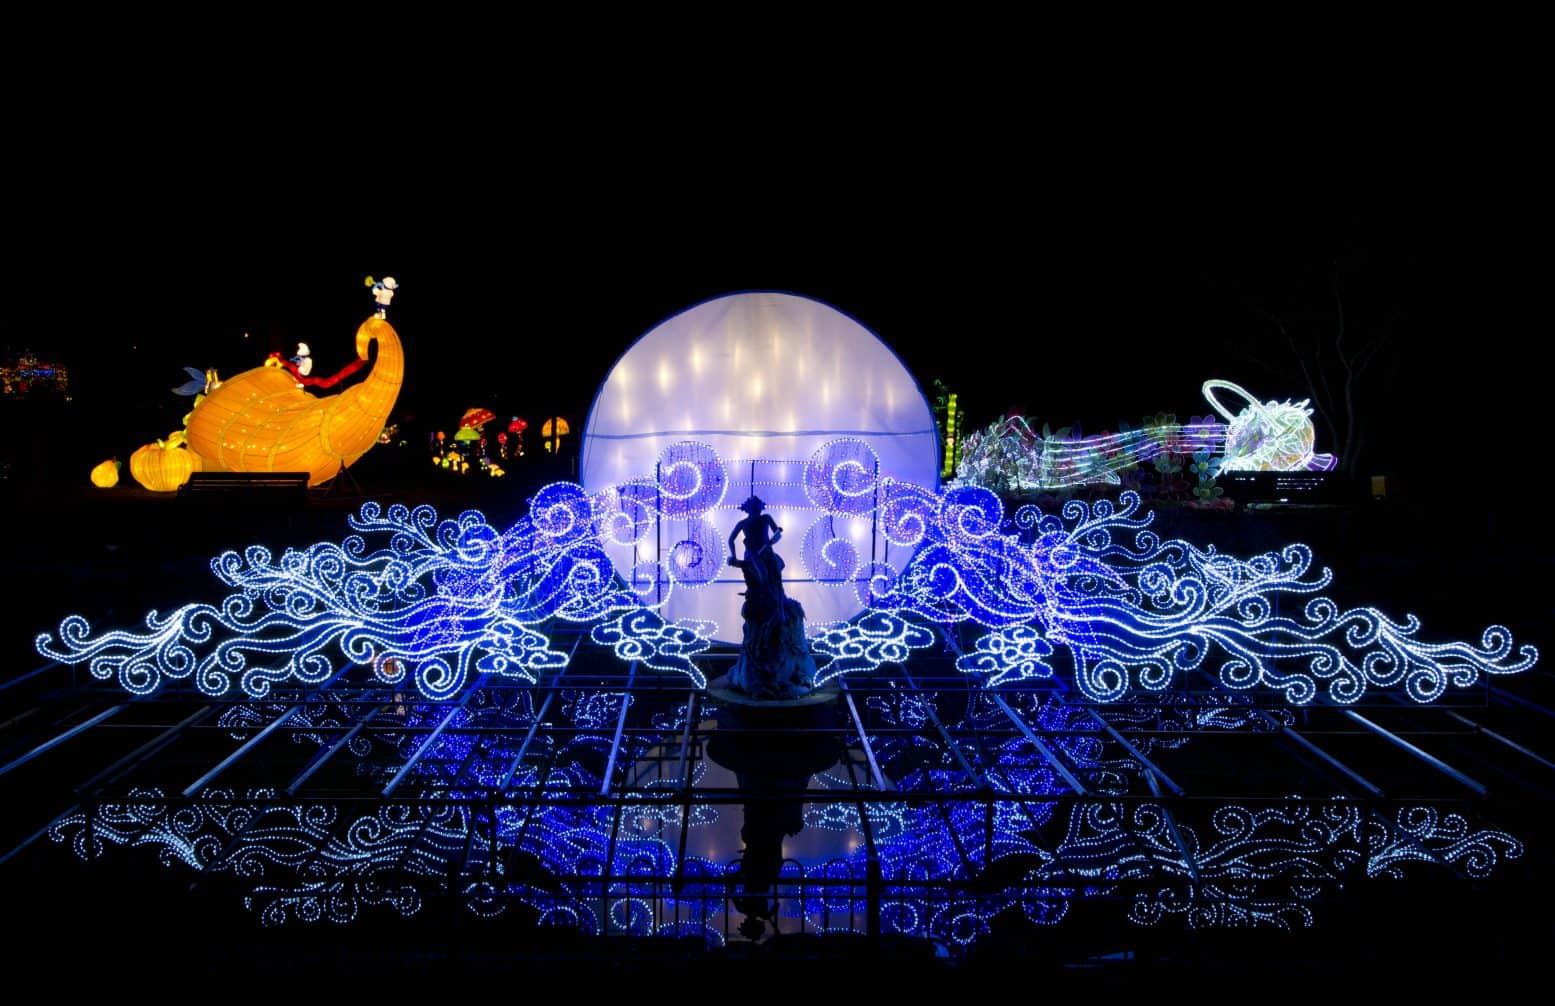 The Magical Lantern Festival at Roundhay Park, Leeds